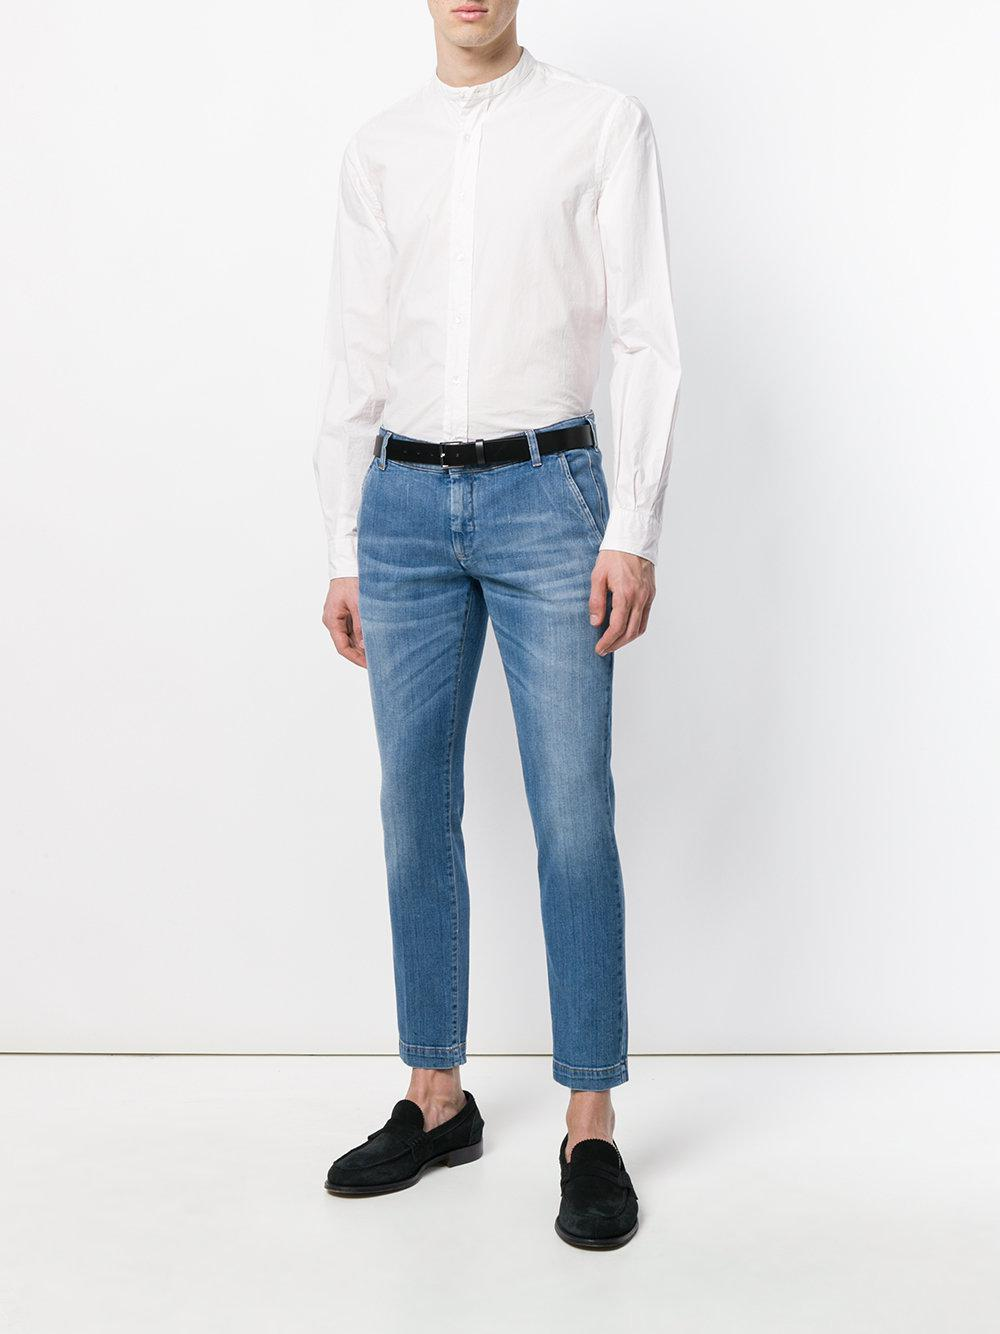 Entre Amis - Blue Cropped Slim Fit Jeans for Men - Lyst. View fullscreen ccc53b808db